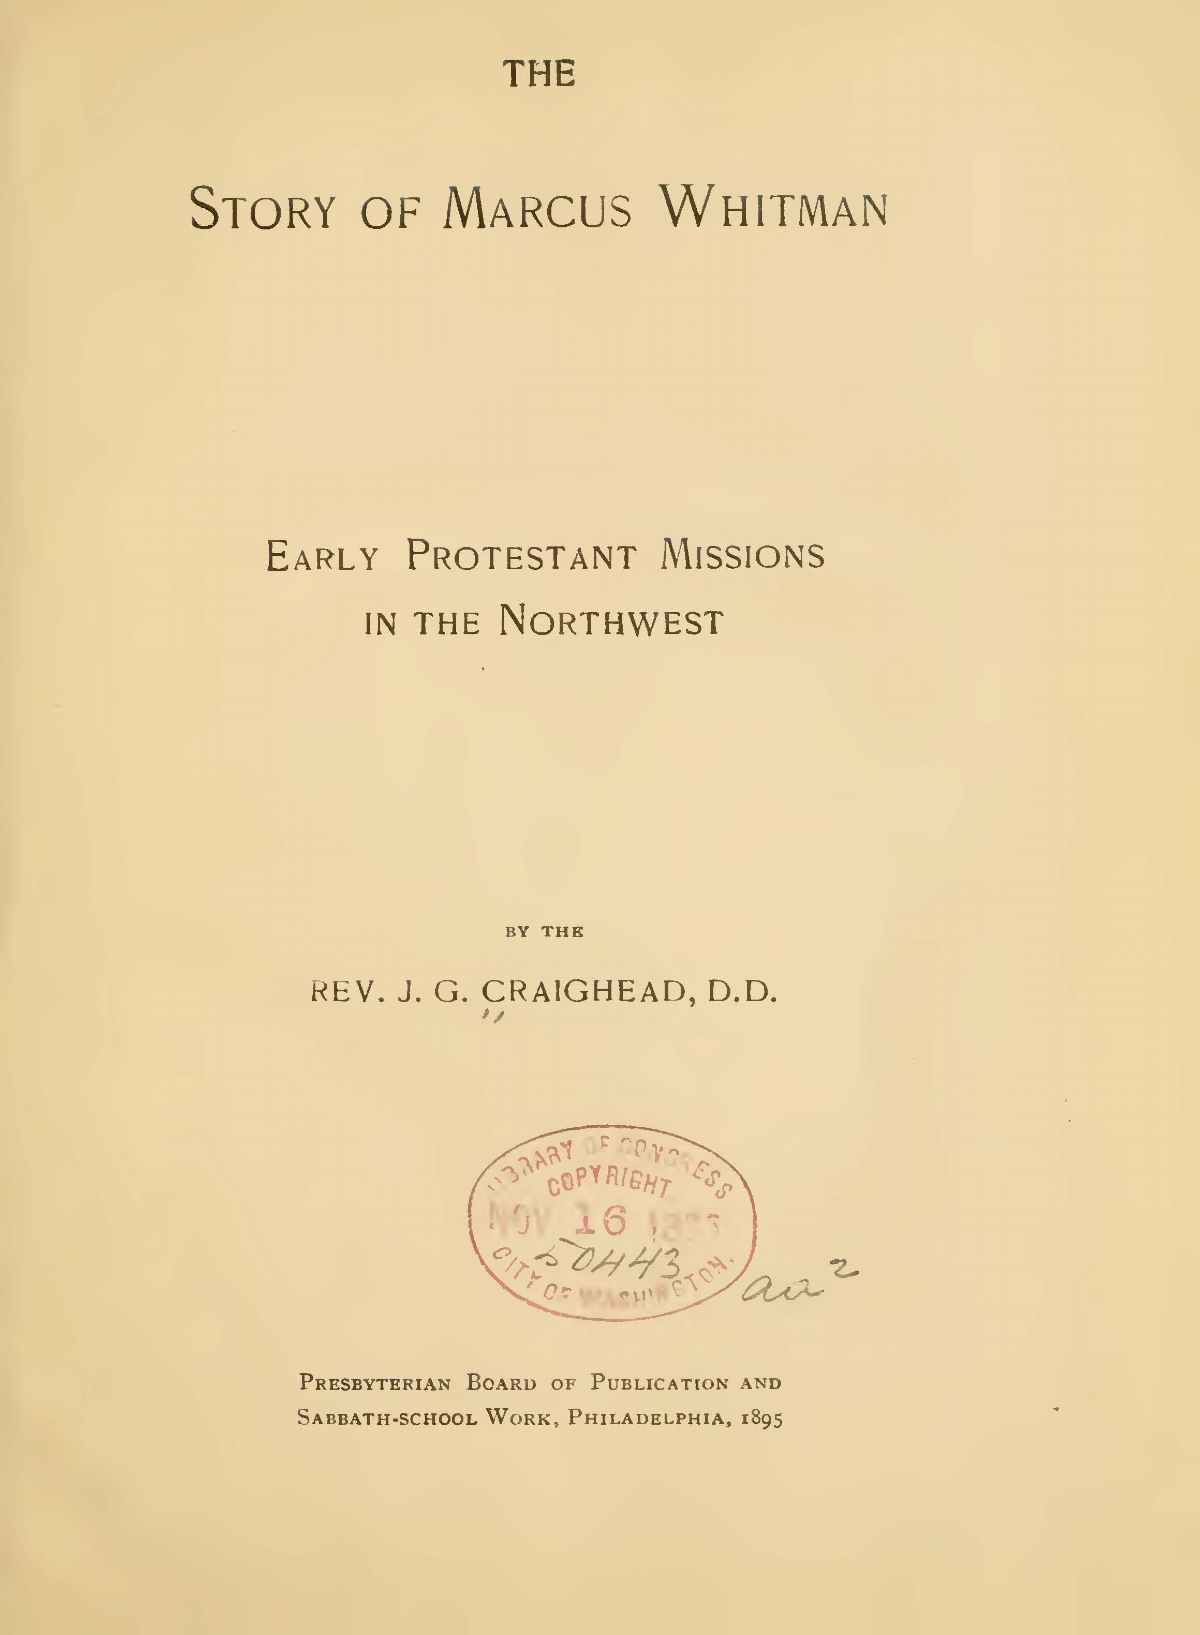 Craighead, James Geddes, The Story of Marcus Whitman Early Protestant Missions in the Northwest Title Page.jpg